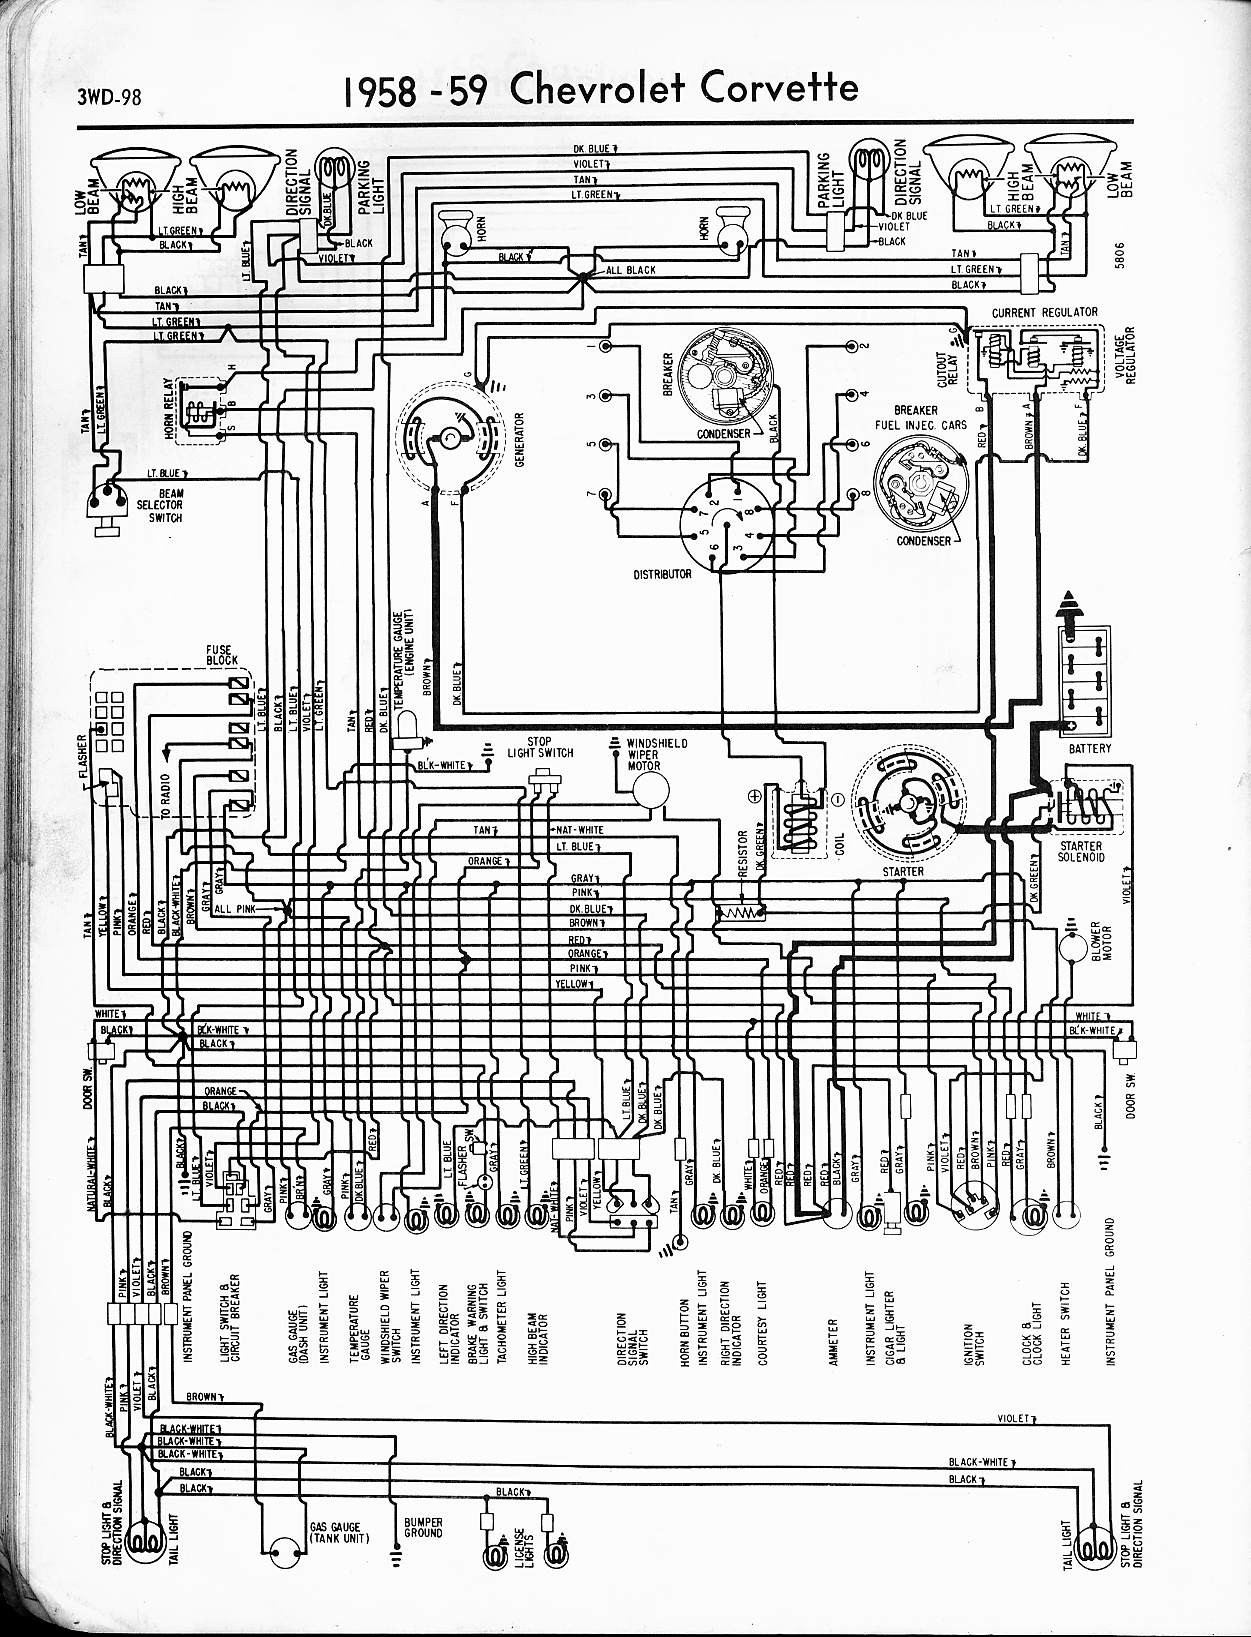 1979 corvette wiring diagram 57 65 chevy wiring diagrams of 1979 corvette wiring diagram all generation